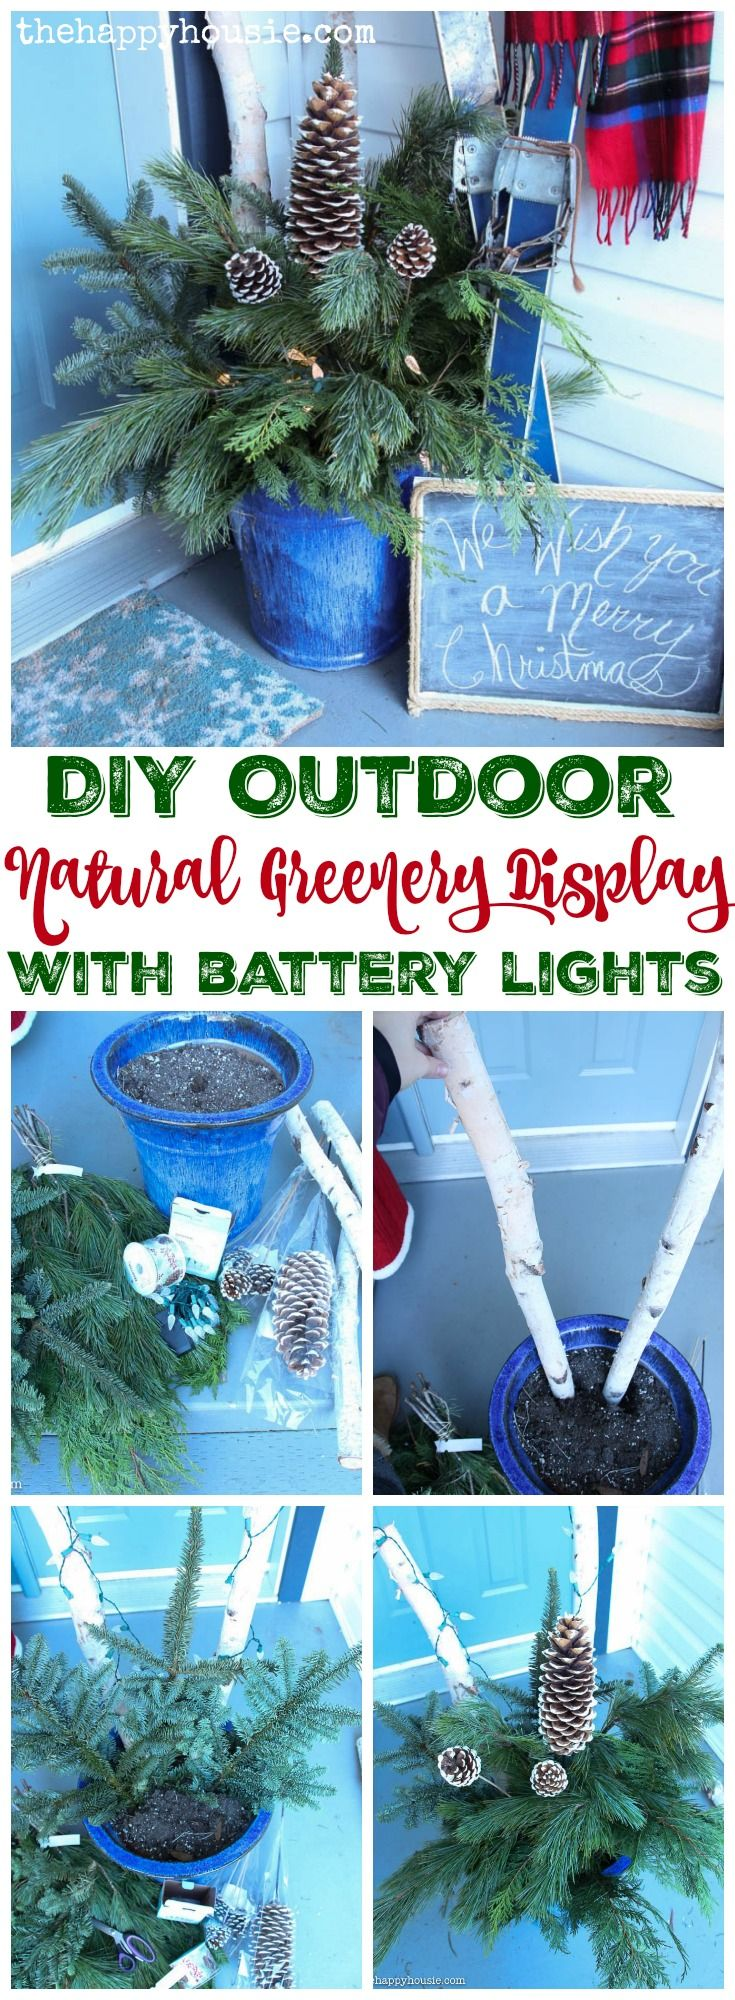 Easy DIY Outdoor Natural Greenery Display with Battery Operated Lights tutorial at thehappyhousie.com